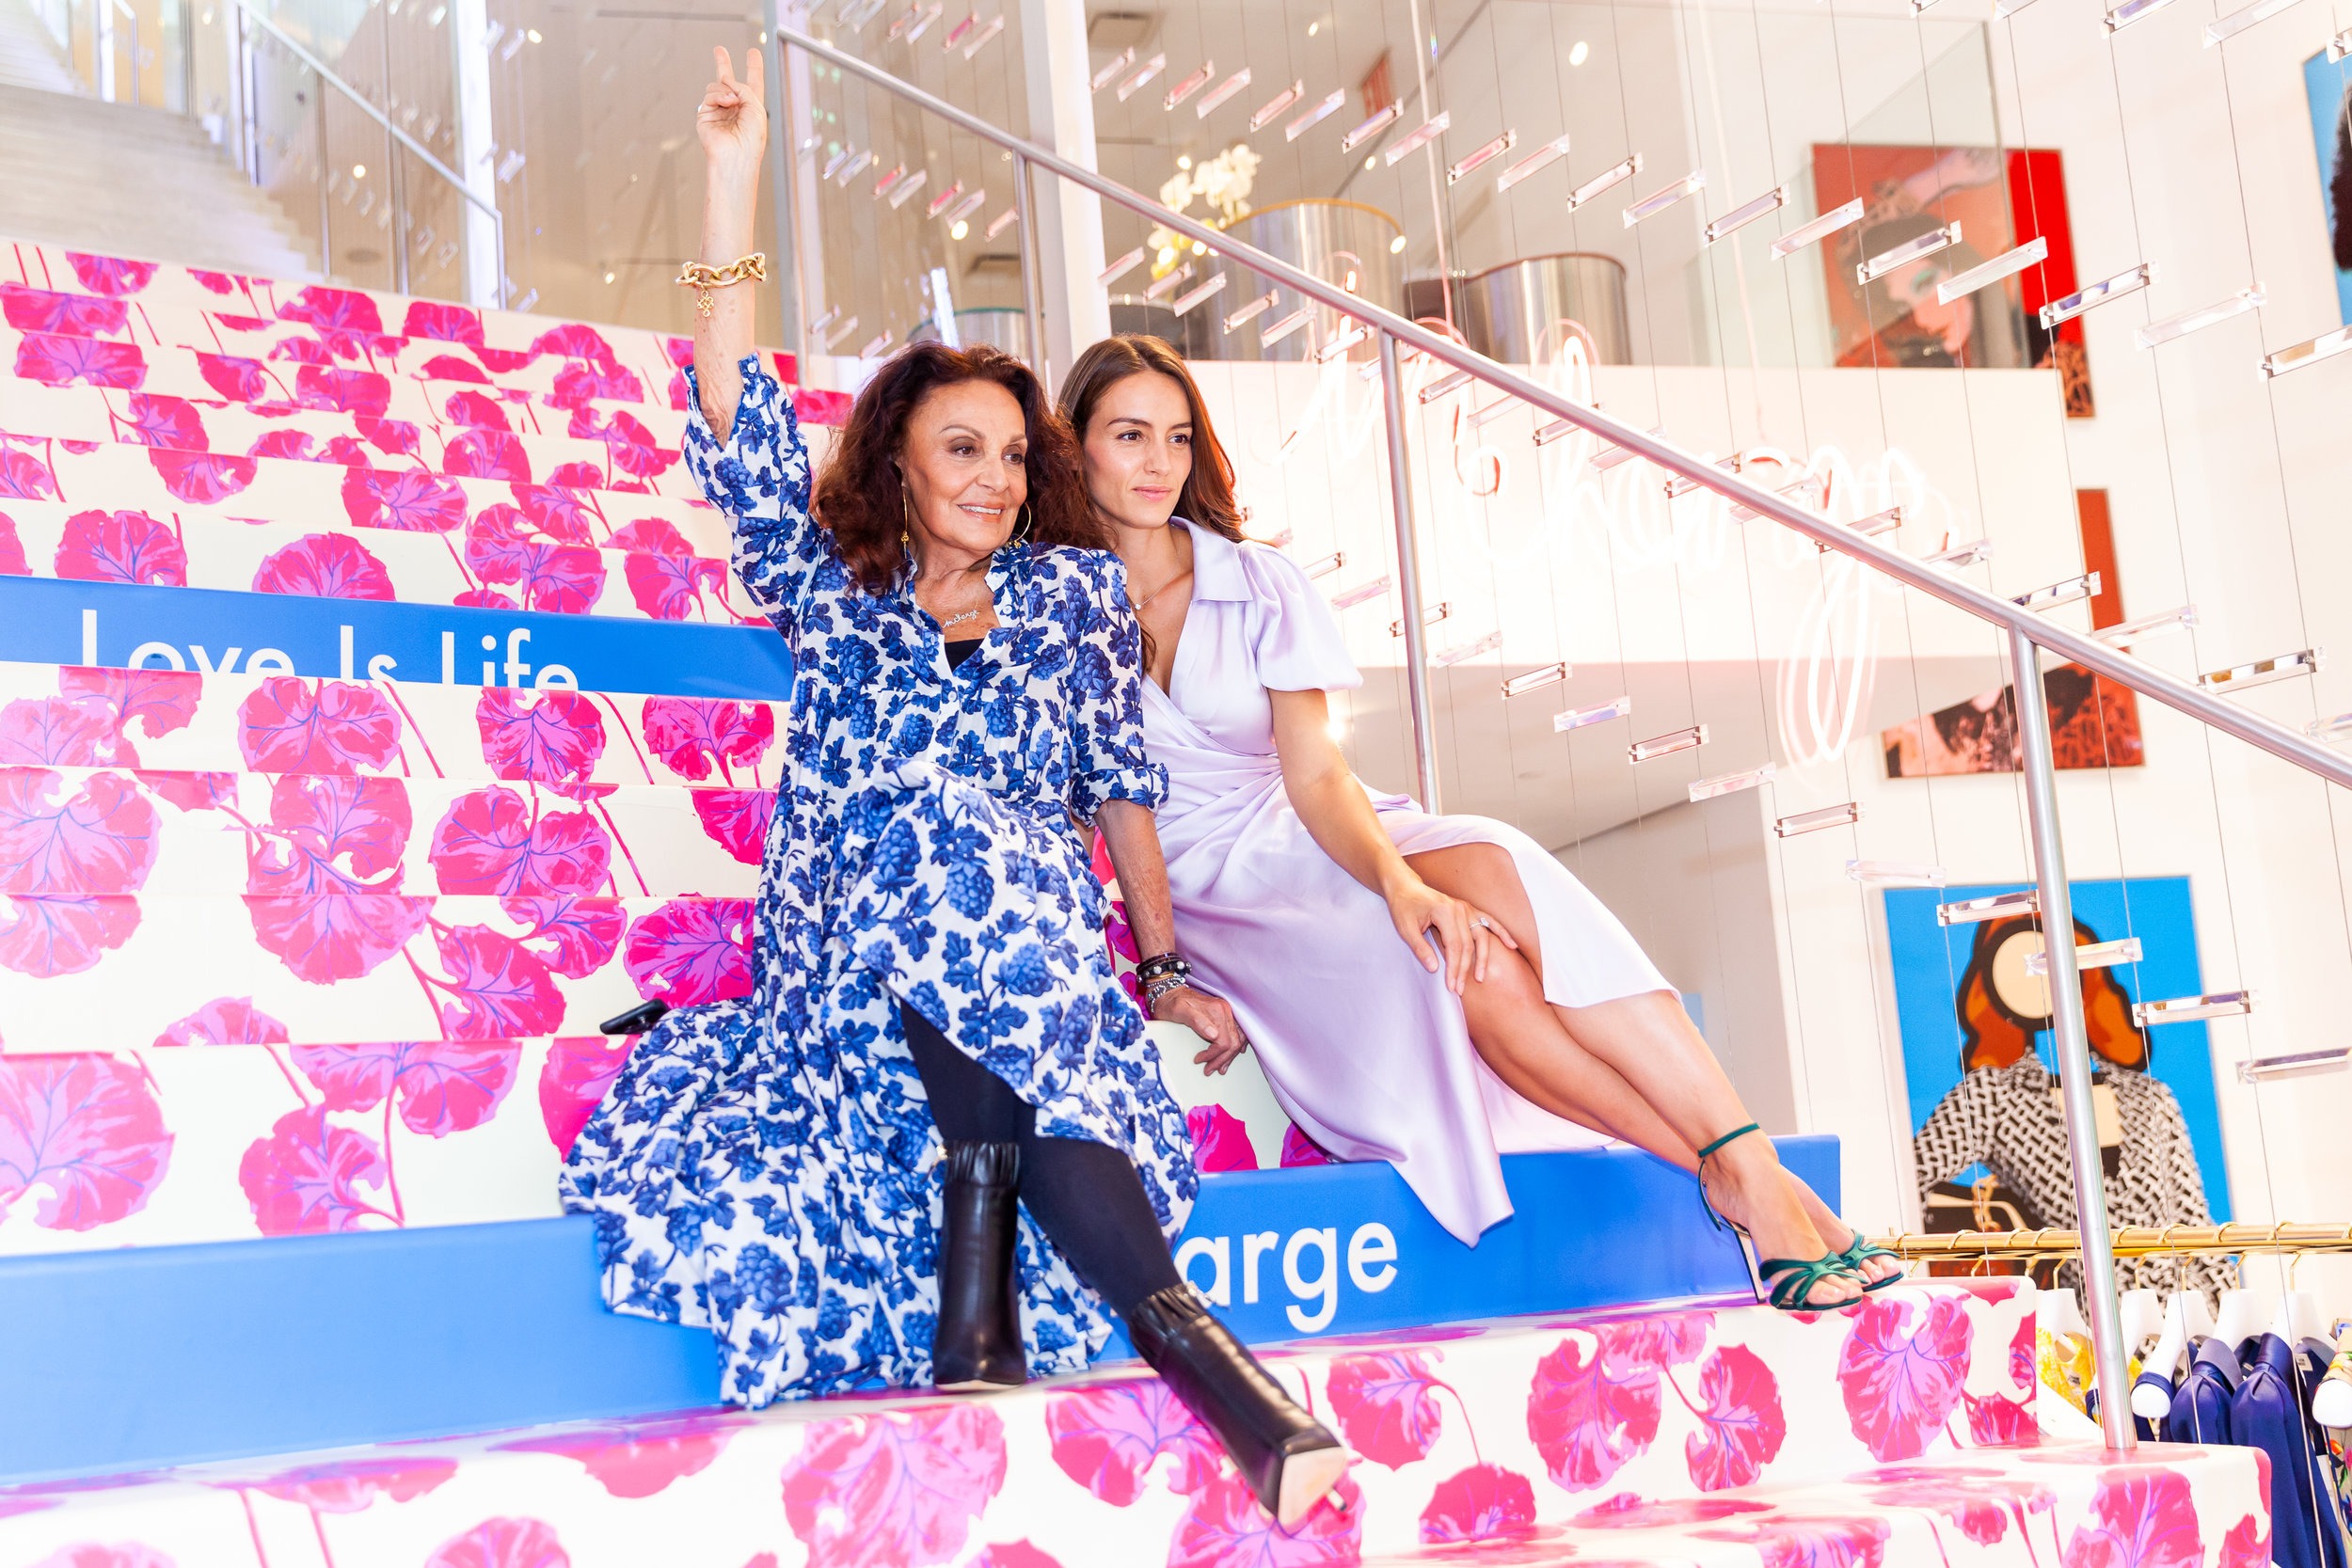 Chloe Gosselin x DVF - Women Empowering Women- Take a look inside the CG Pop-up at the DVF Flagship in New York!